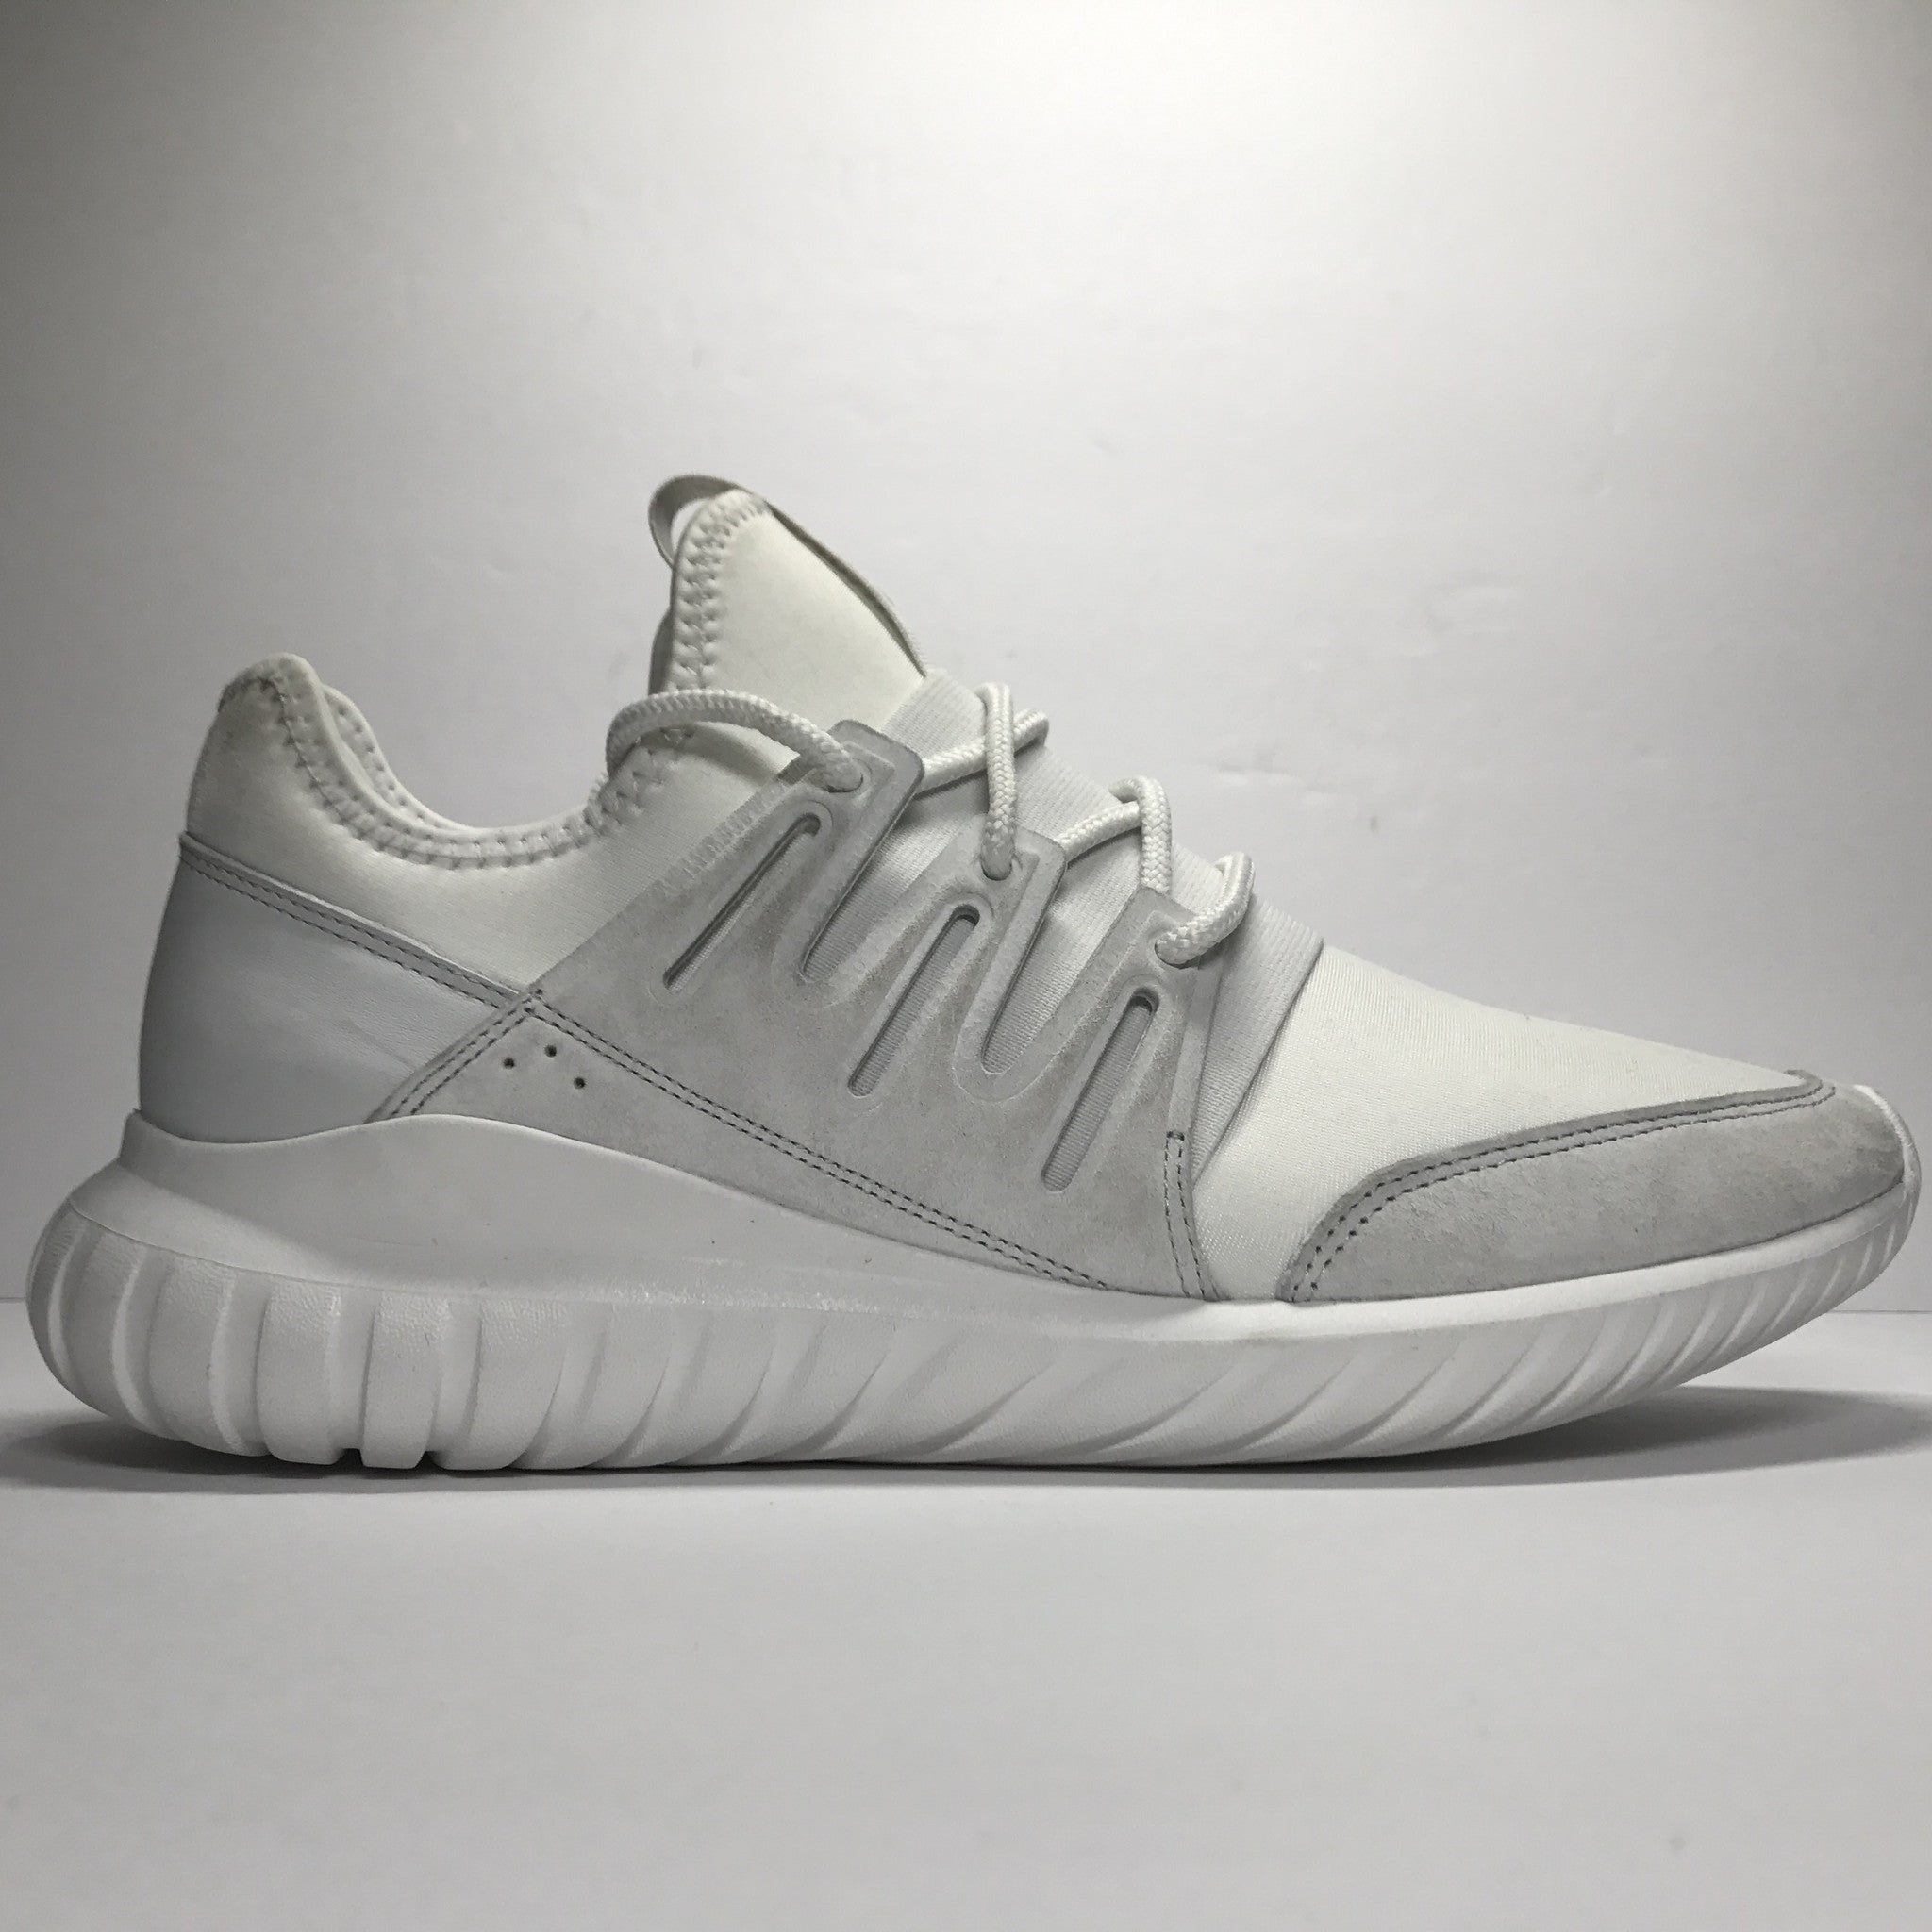 DS Adidas Tubular Radial Crystal White Size 10